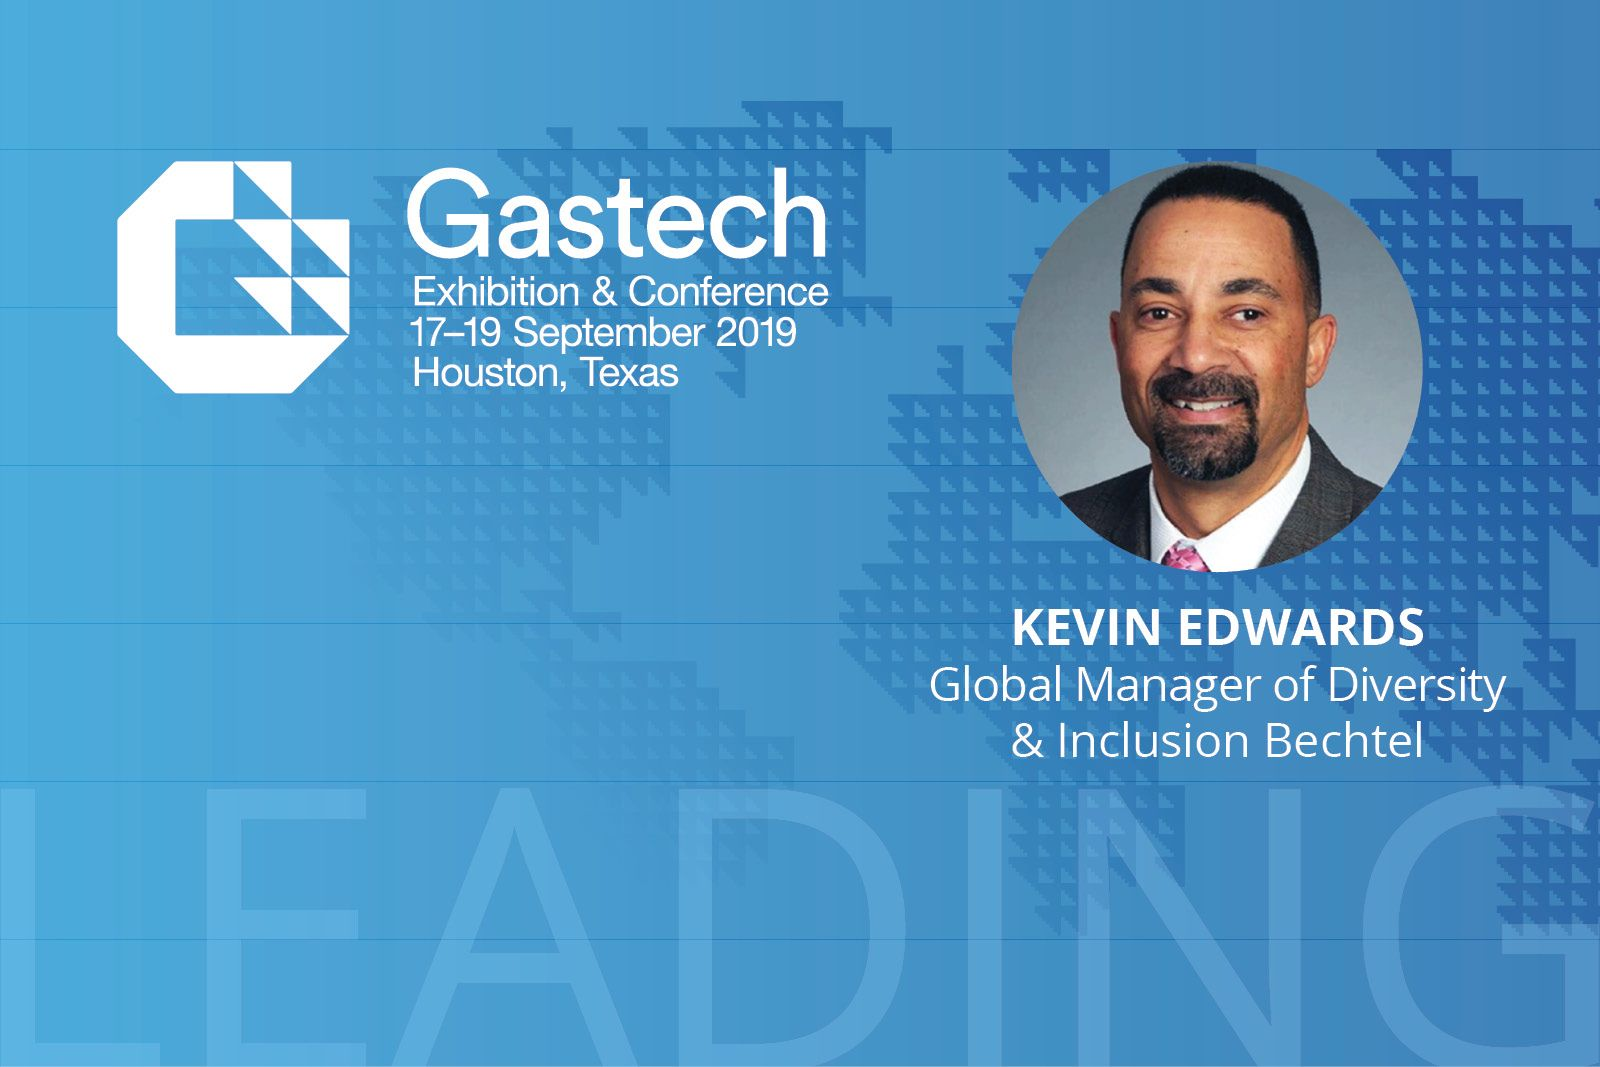 Kevin Edwards gives advice in the Gastech Diversity and Inclusion ebook on Experience Energy